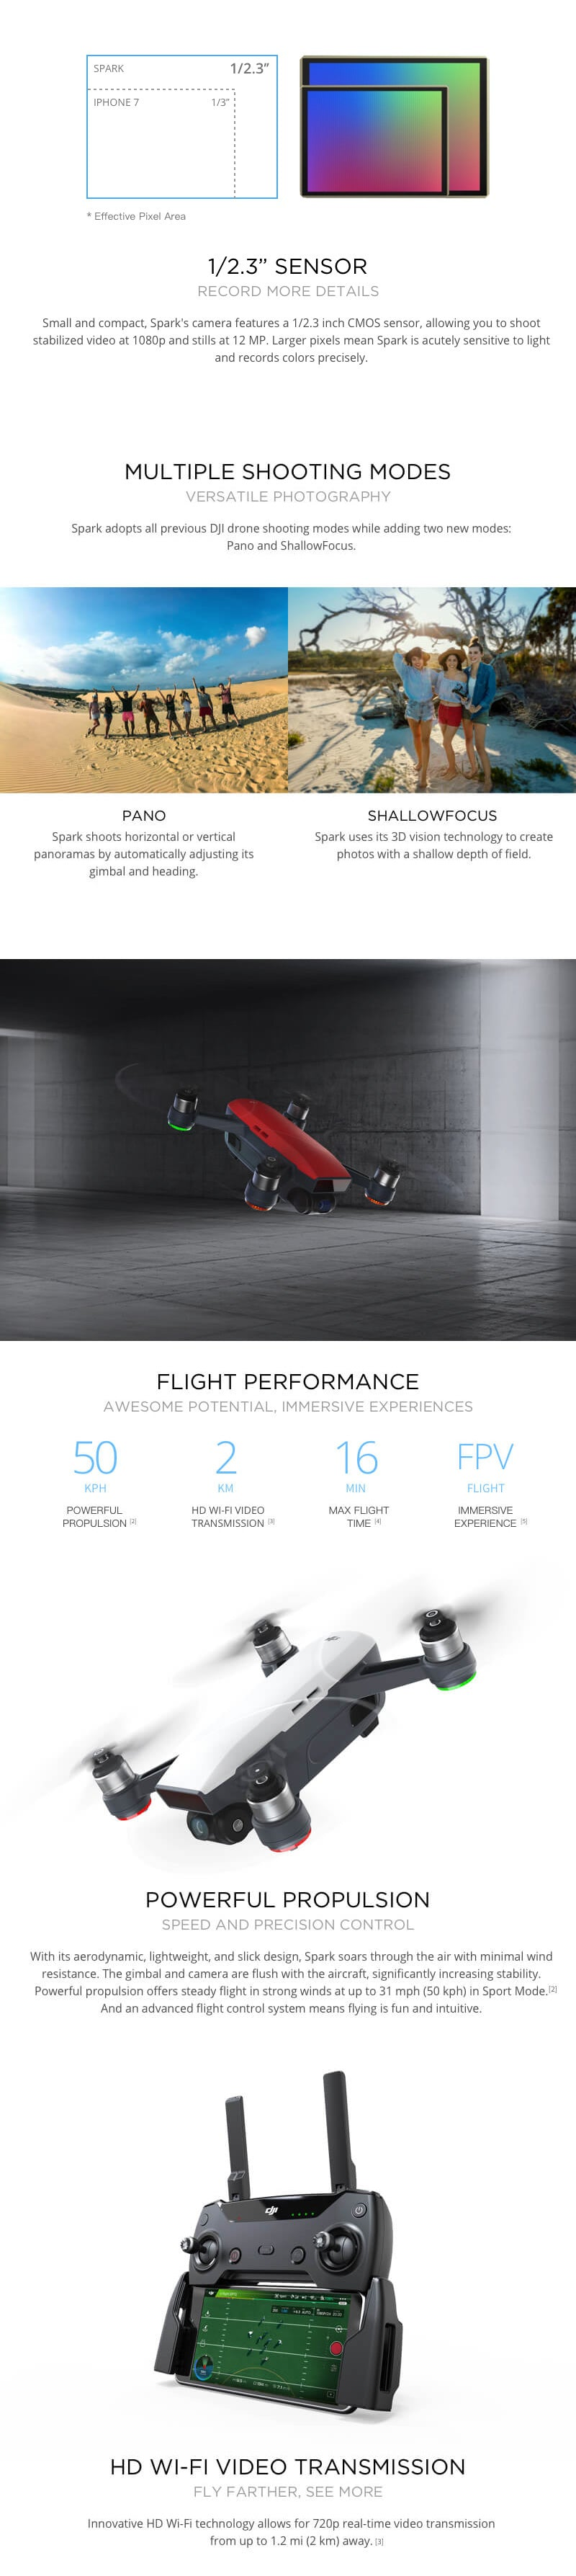 DJI Spark Description 3